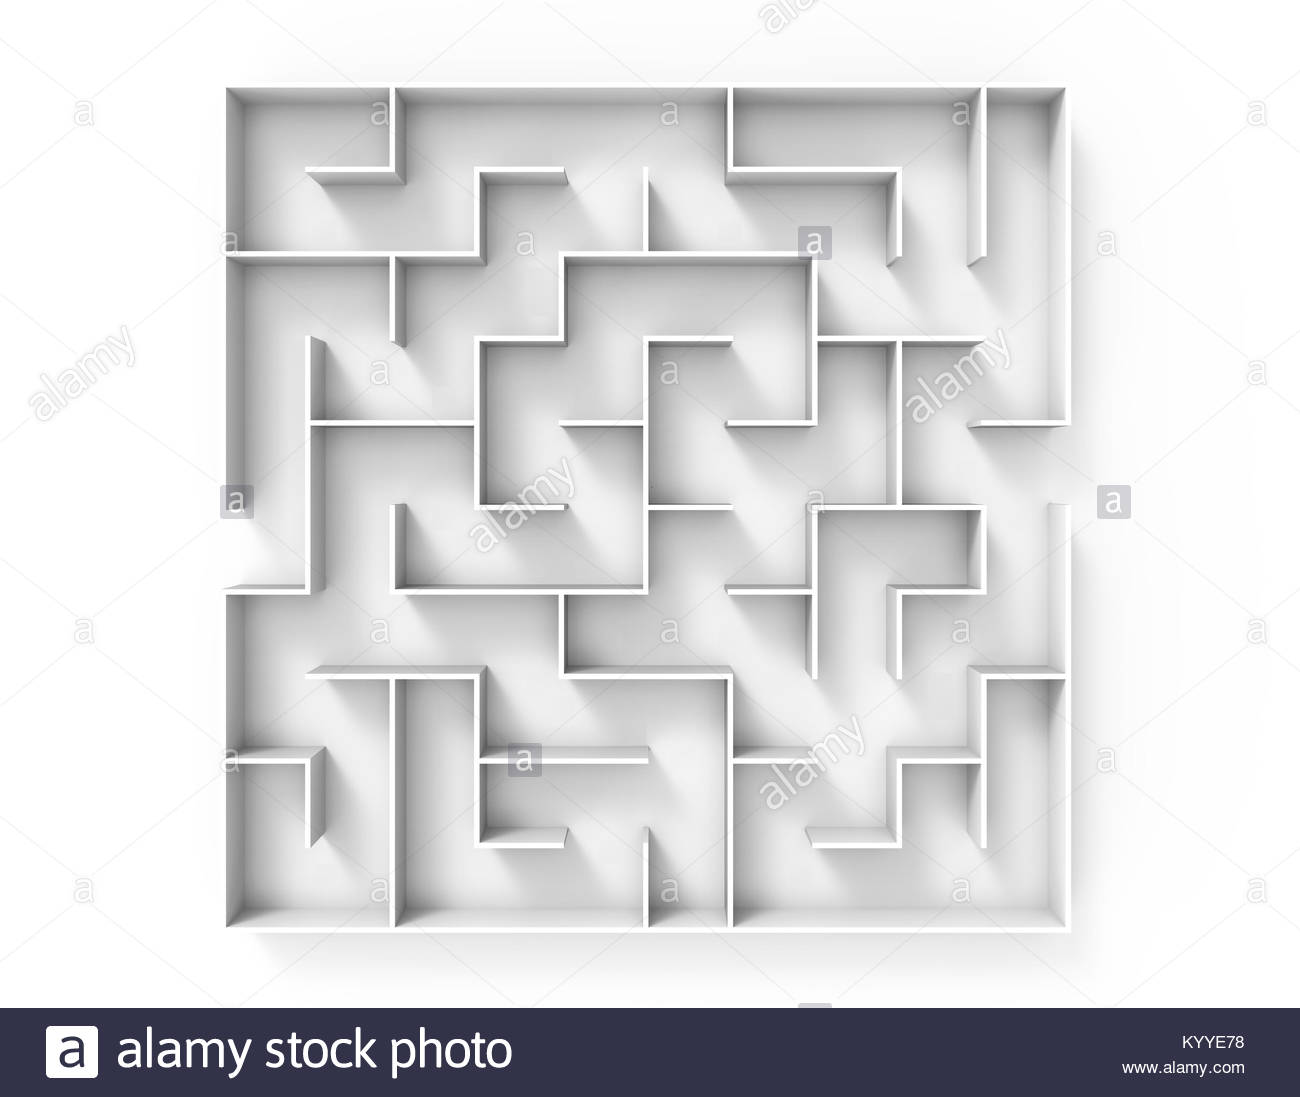 Top View Round Maze Stock Photos & Top View Round Maze Stock Images ...